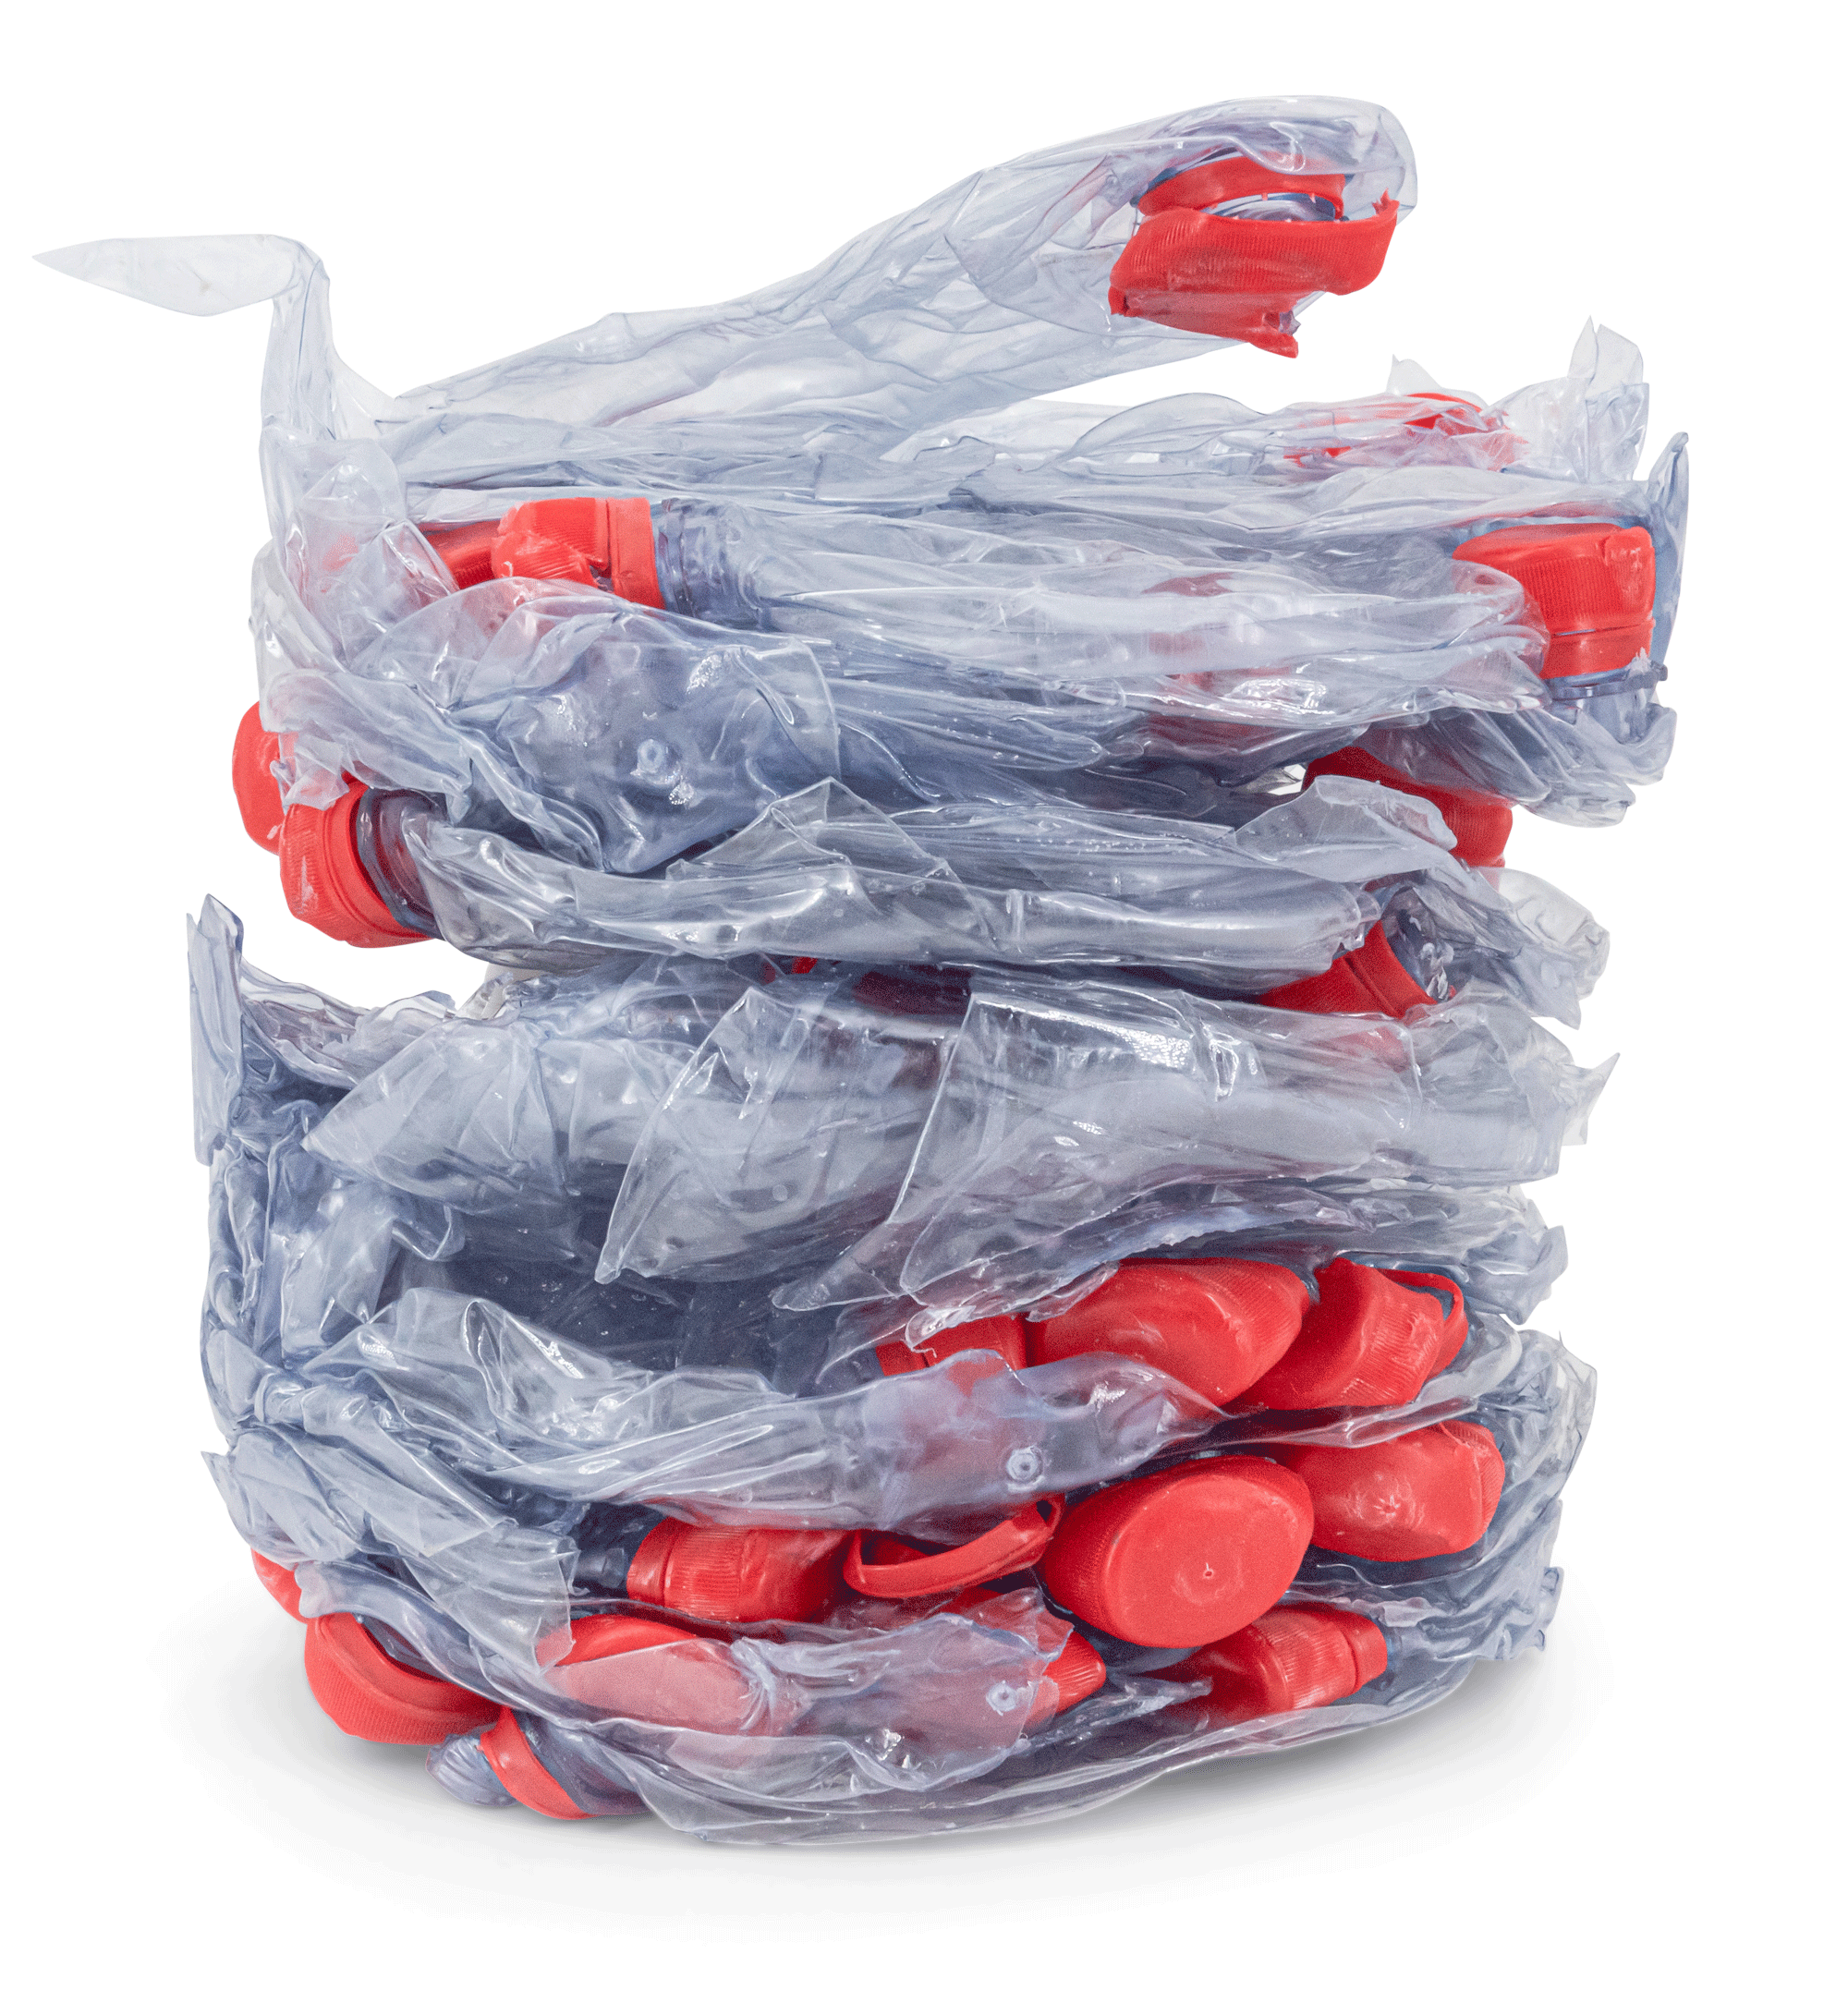 Compacted disks of plastic bottles